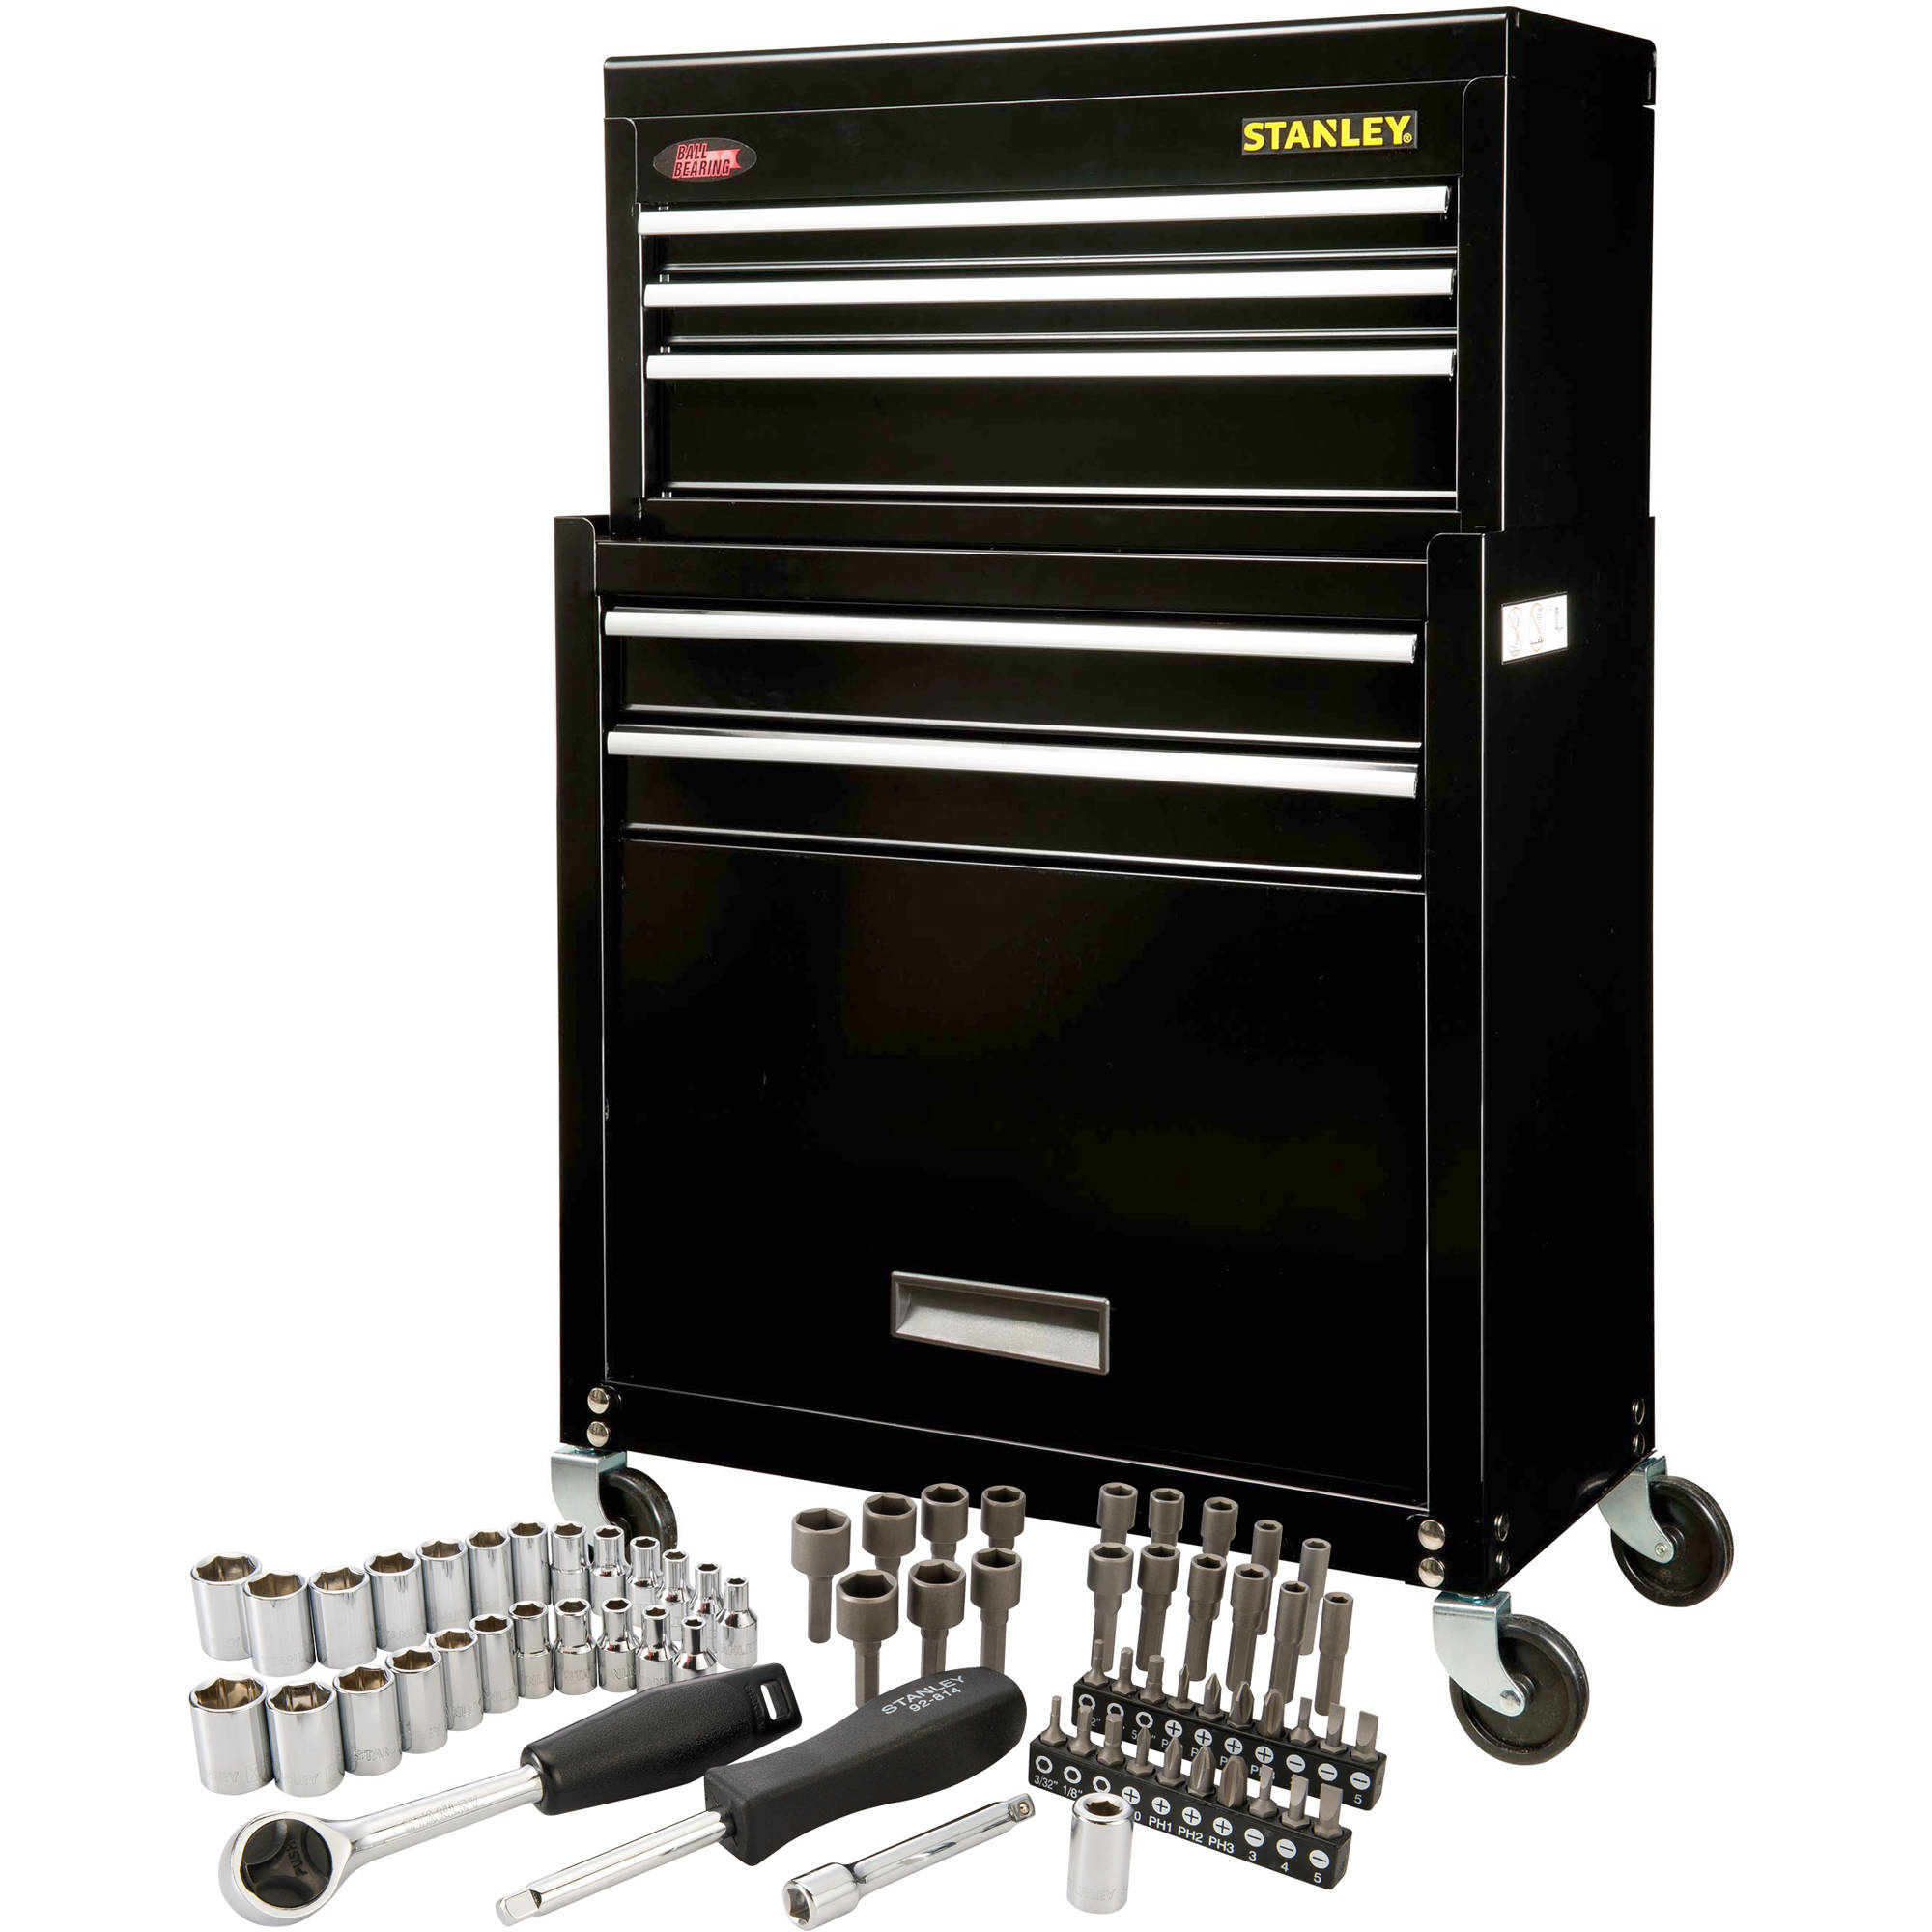 Stanley Rolling Tool Chest With Bonus 68 Piece Mechanic Set   Walmart.com